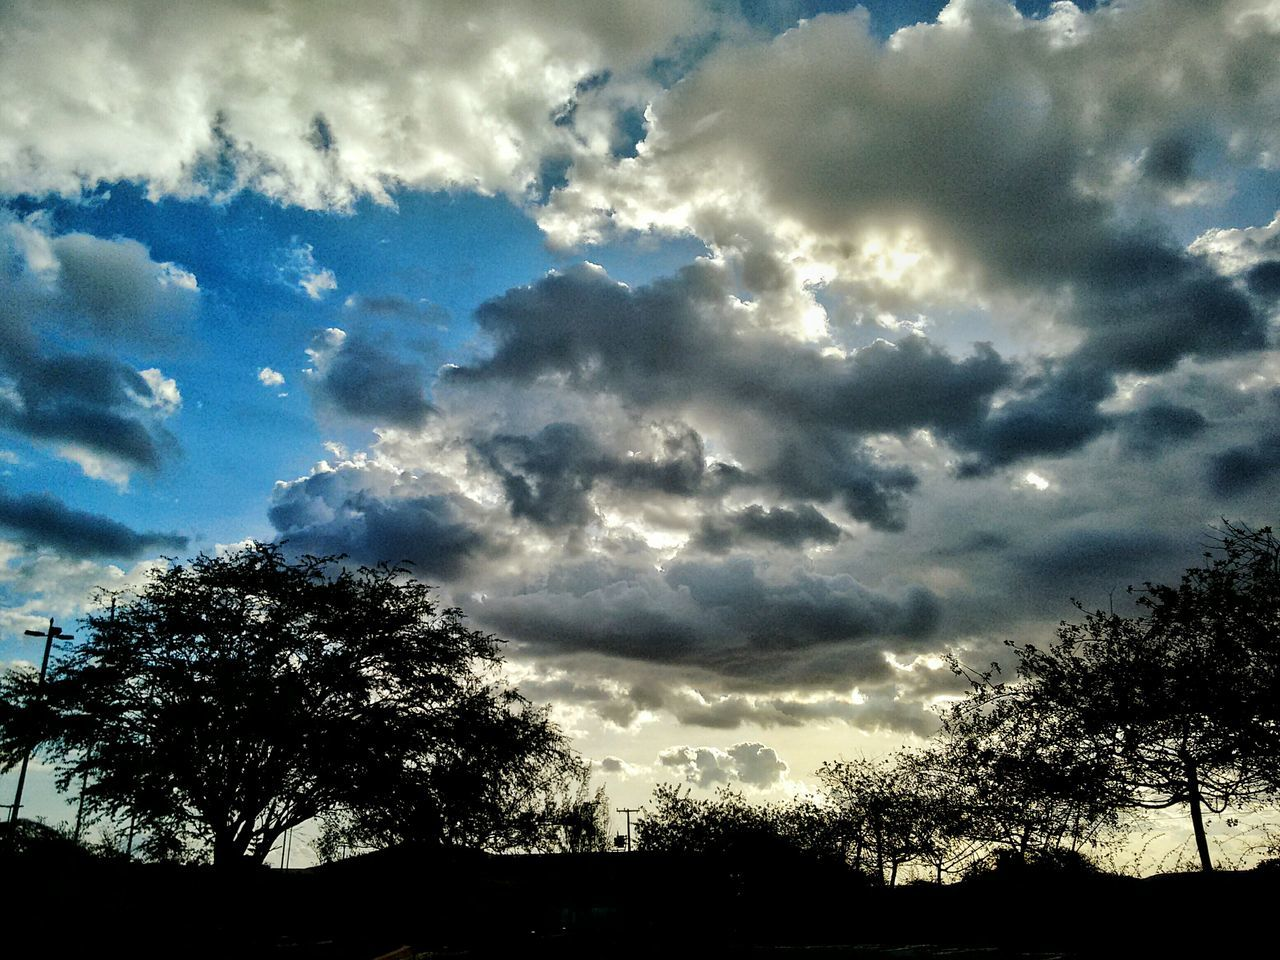 Sky Nature Cloud - Sky Scenics Blue Sky Blue Photography Photo PhotographerSky Hobby Brazil Nordeste  Paraíba Paraíso Sertão Nature Low Angle View Beauty In Nature Cloud - Sky No People Tree Growth Scenics Tranquility First Eyeem Photo